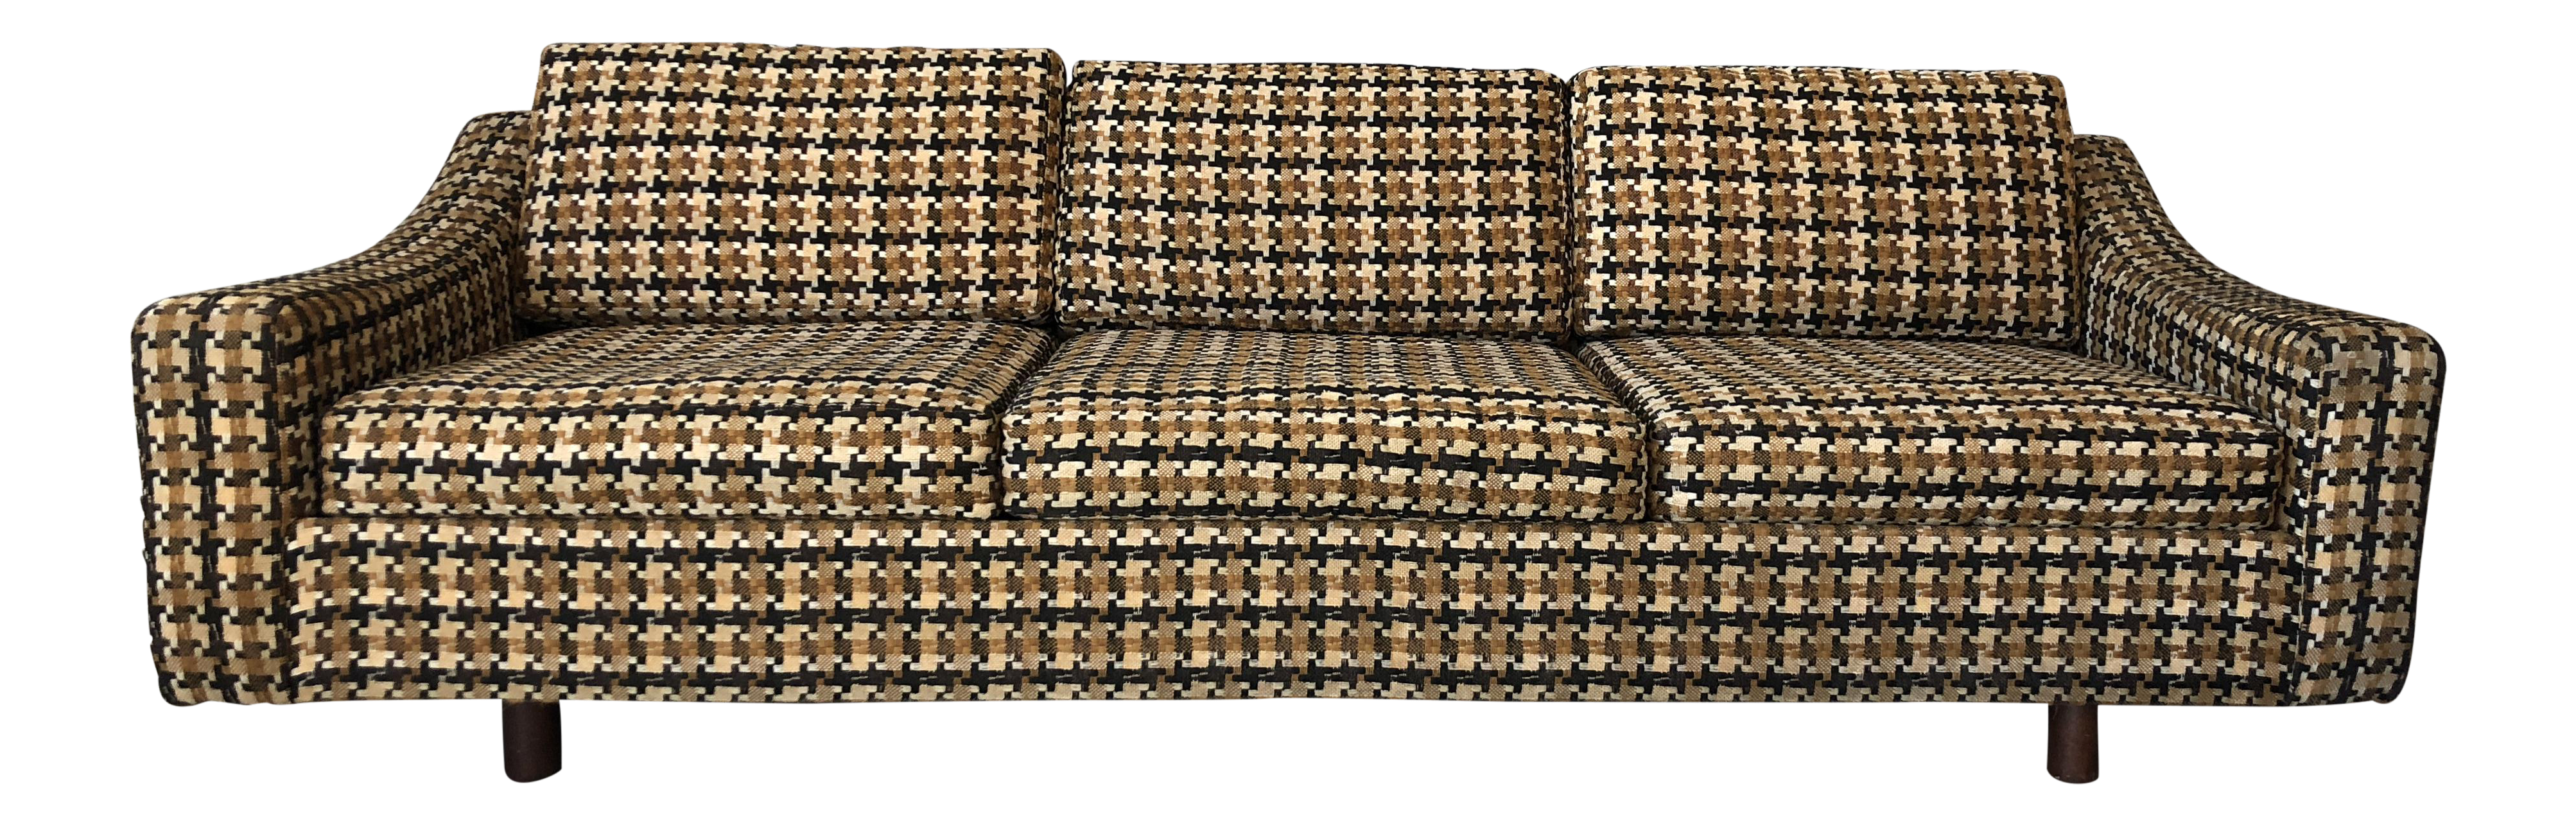 Charmant Harvey Probber Tuxedo Style Sofa With Jack Lenor Larsen Upholstery |  Chairish